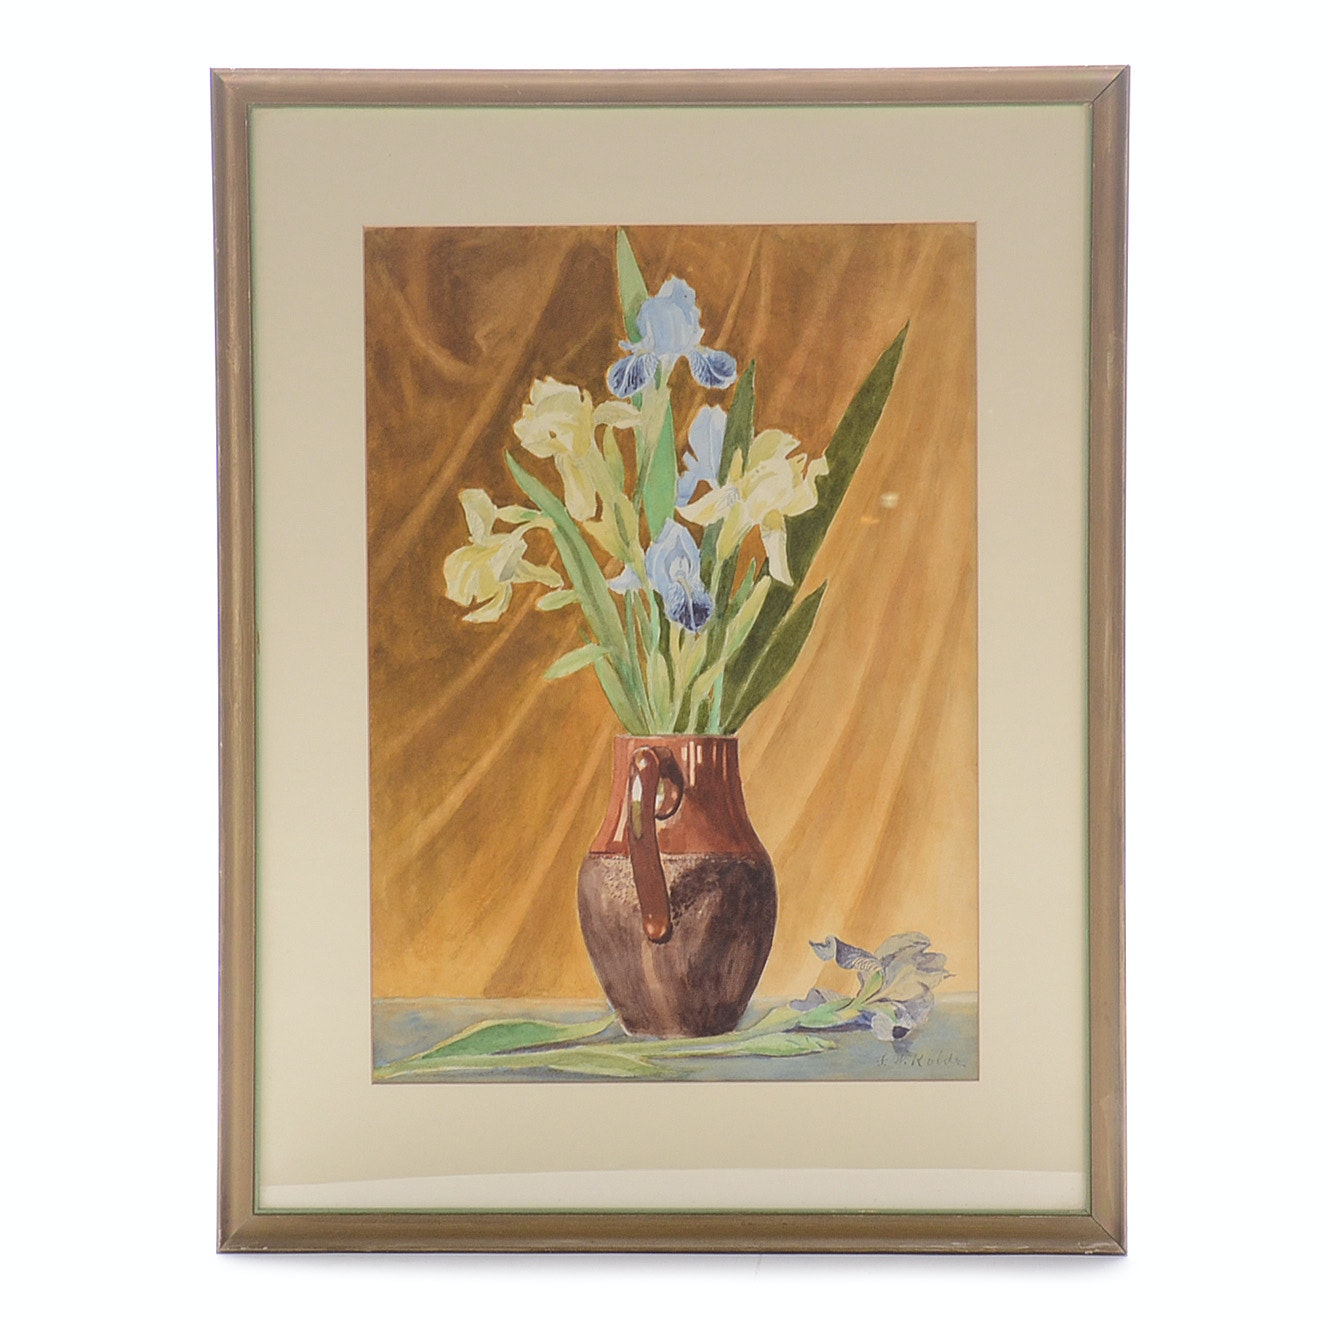 Frederick William Kolde Watercolor Painting of Still Life with Iris Flowers